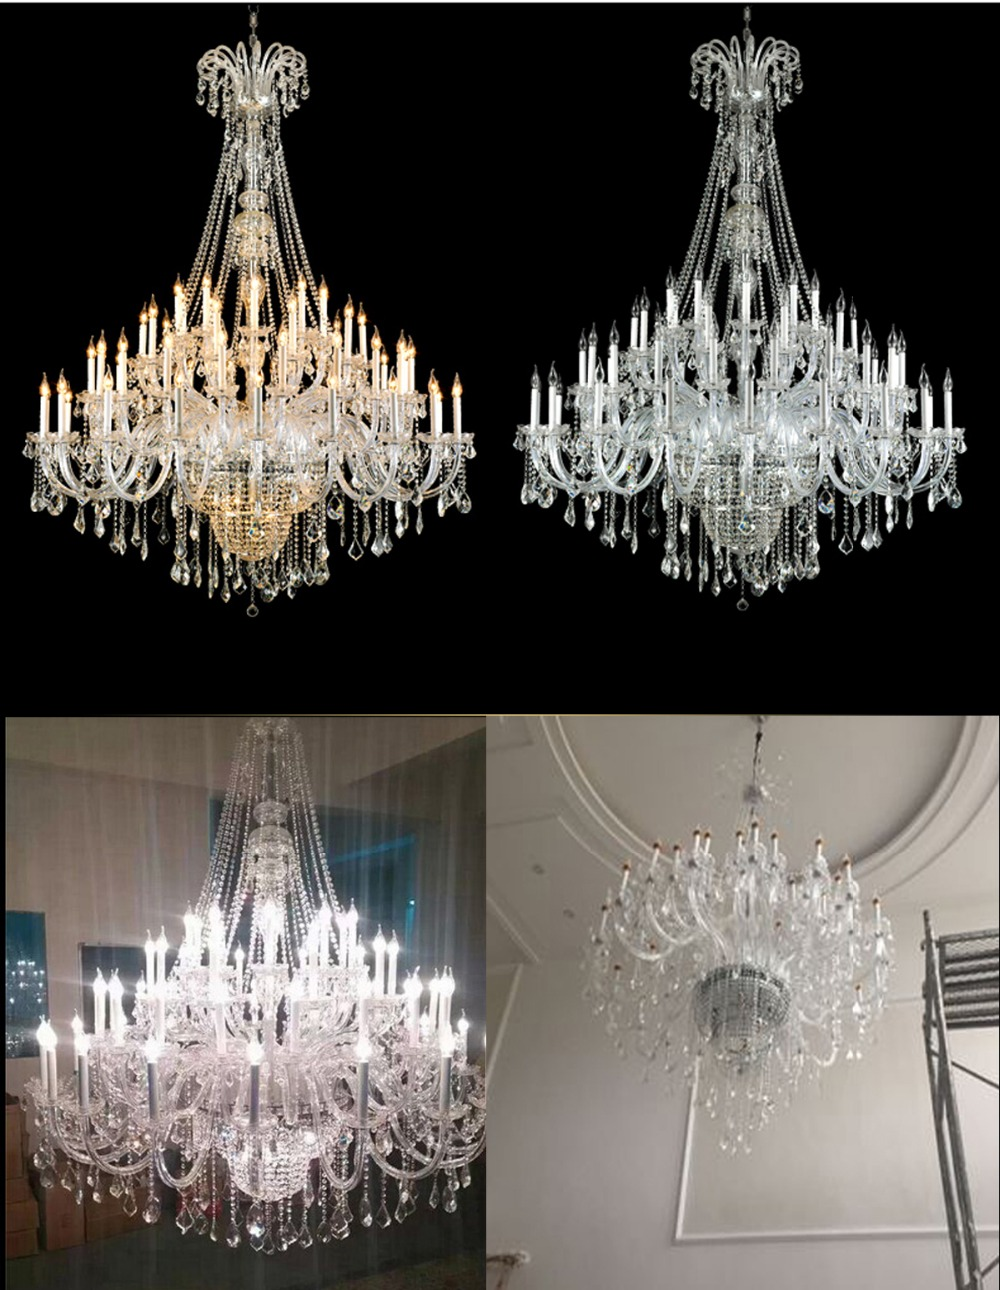 maria large crystal collection product pisa livorno chandelier facebook extra theresa light share